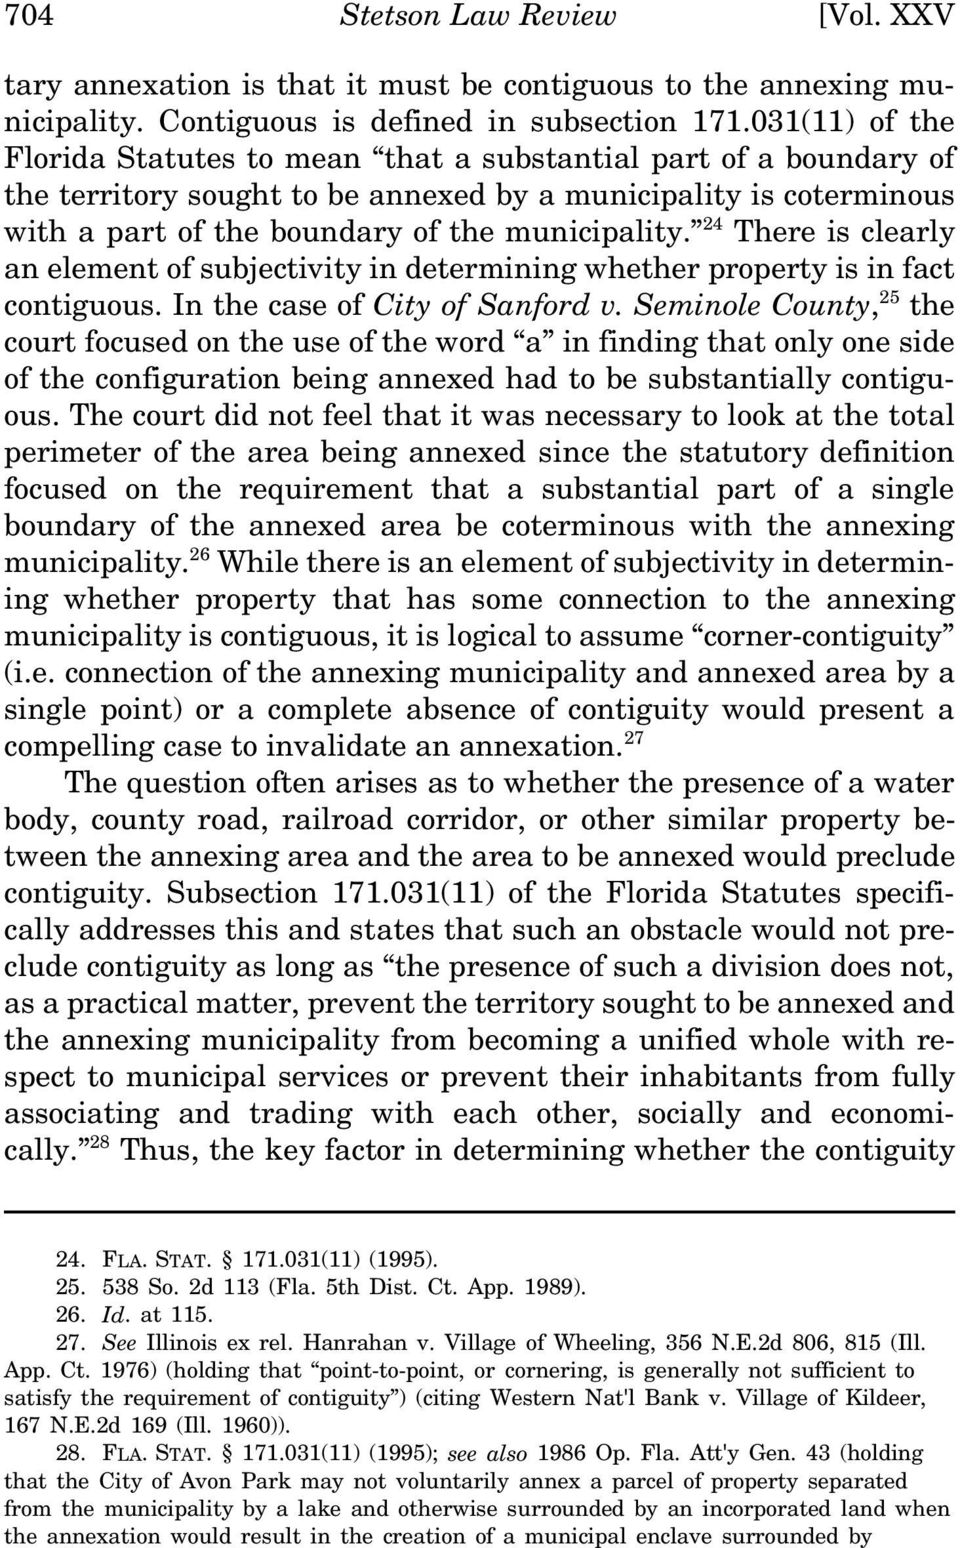 24 There is clearly an element of subjectivity in determining whether property is in fact contiguous. In the case of City of Sanford v.